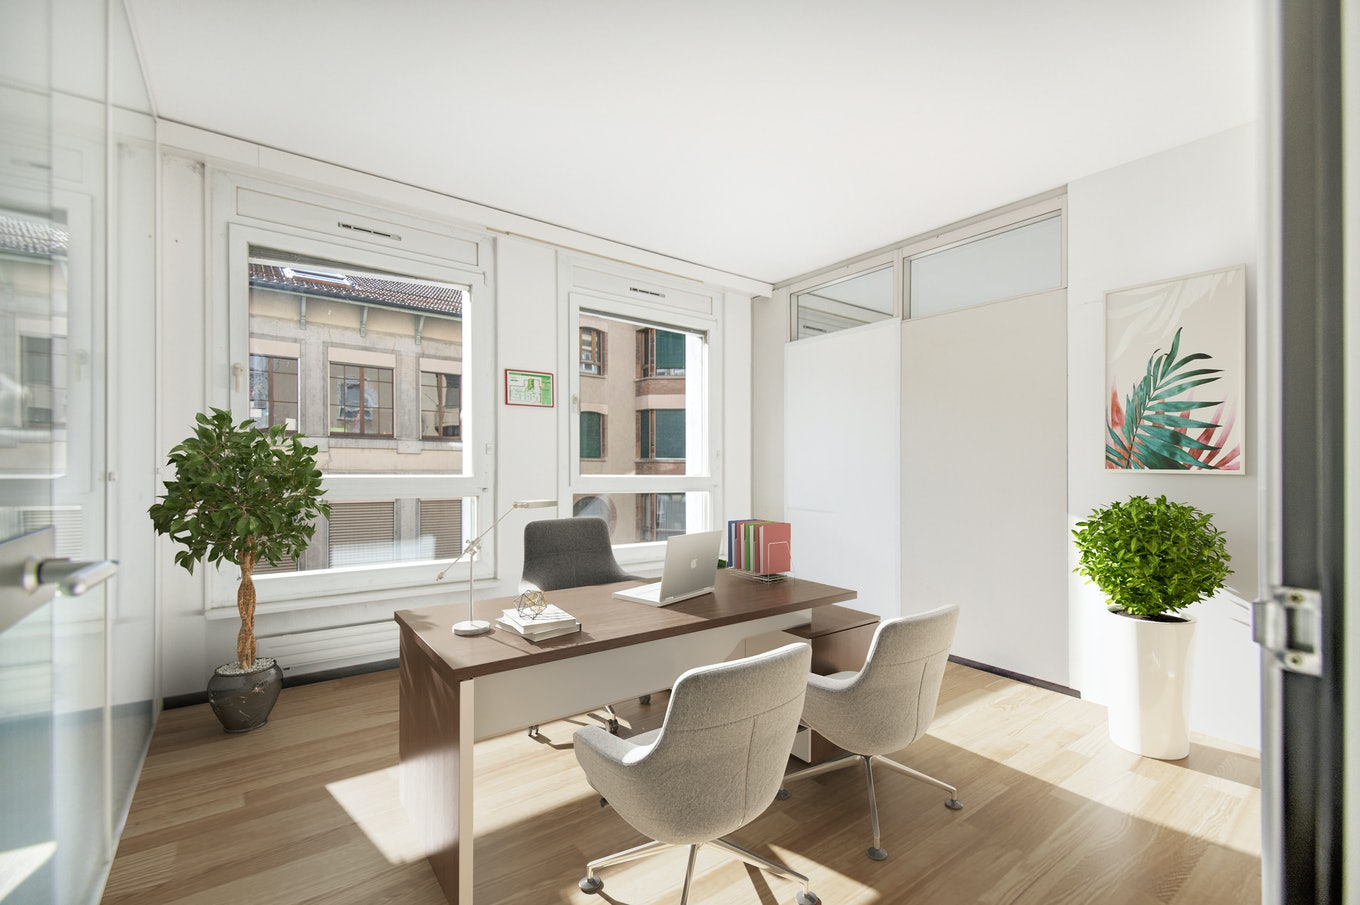 3D staging office interior chairs